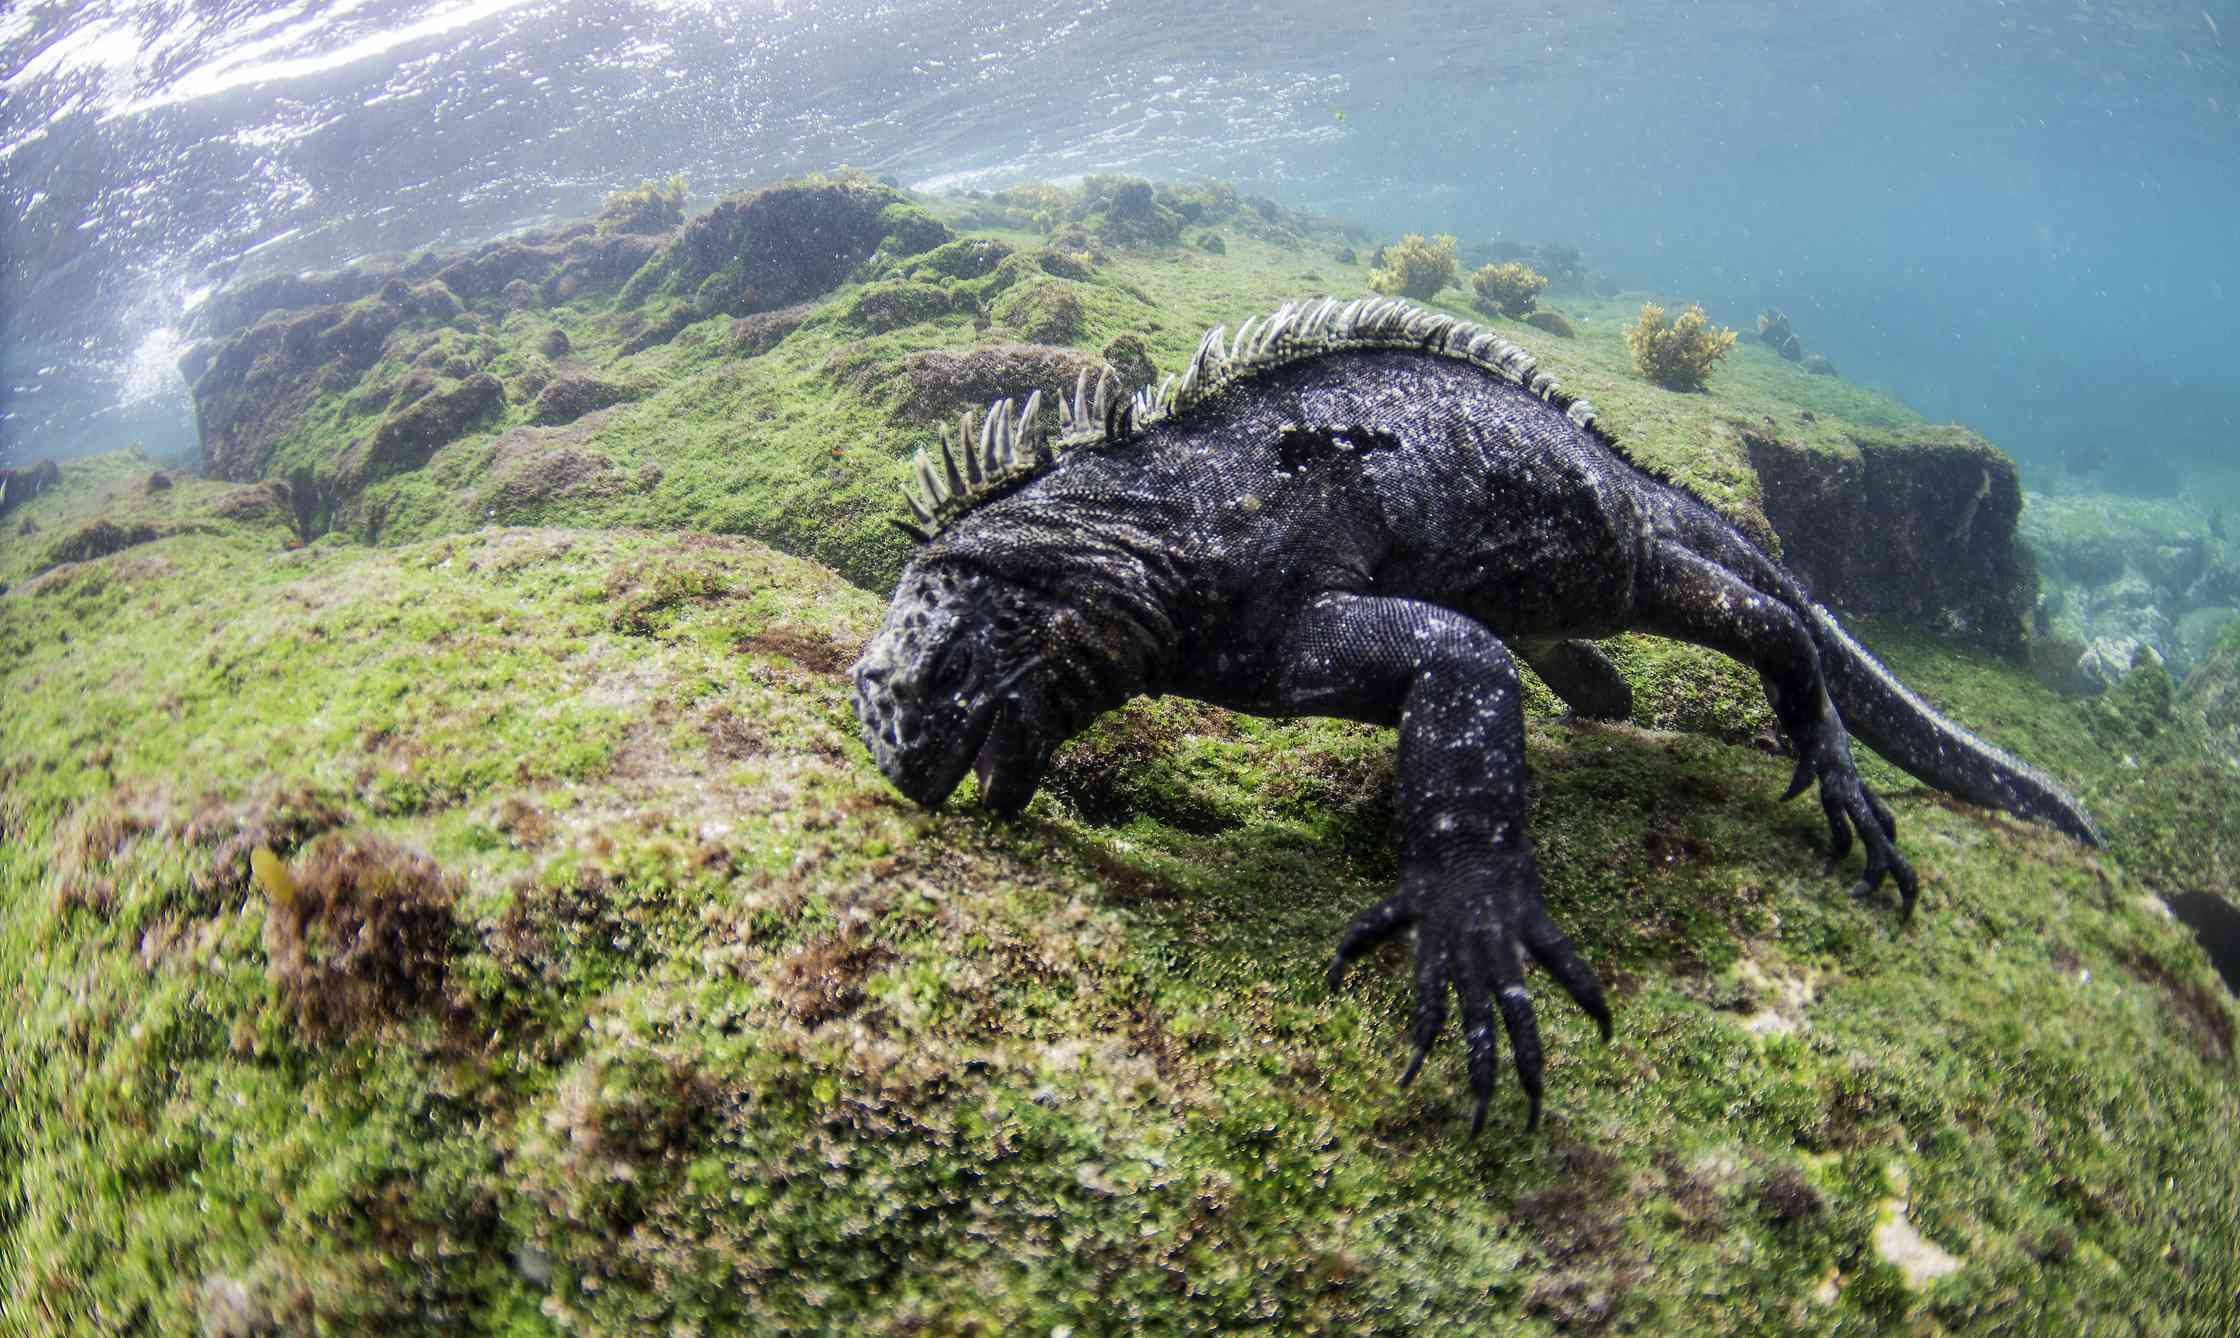 A marine iguana just below the water's surface eating algae off of a rock